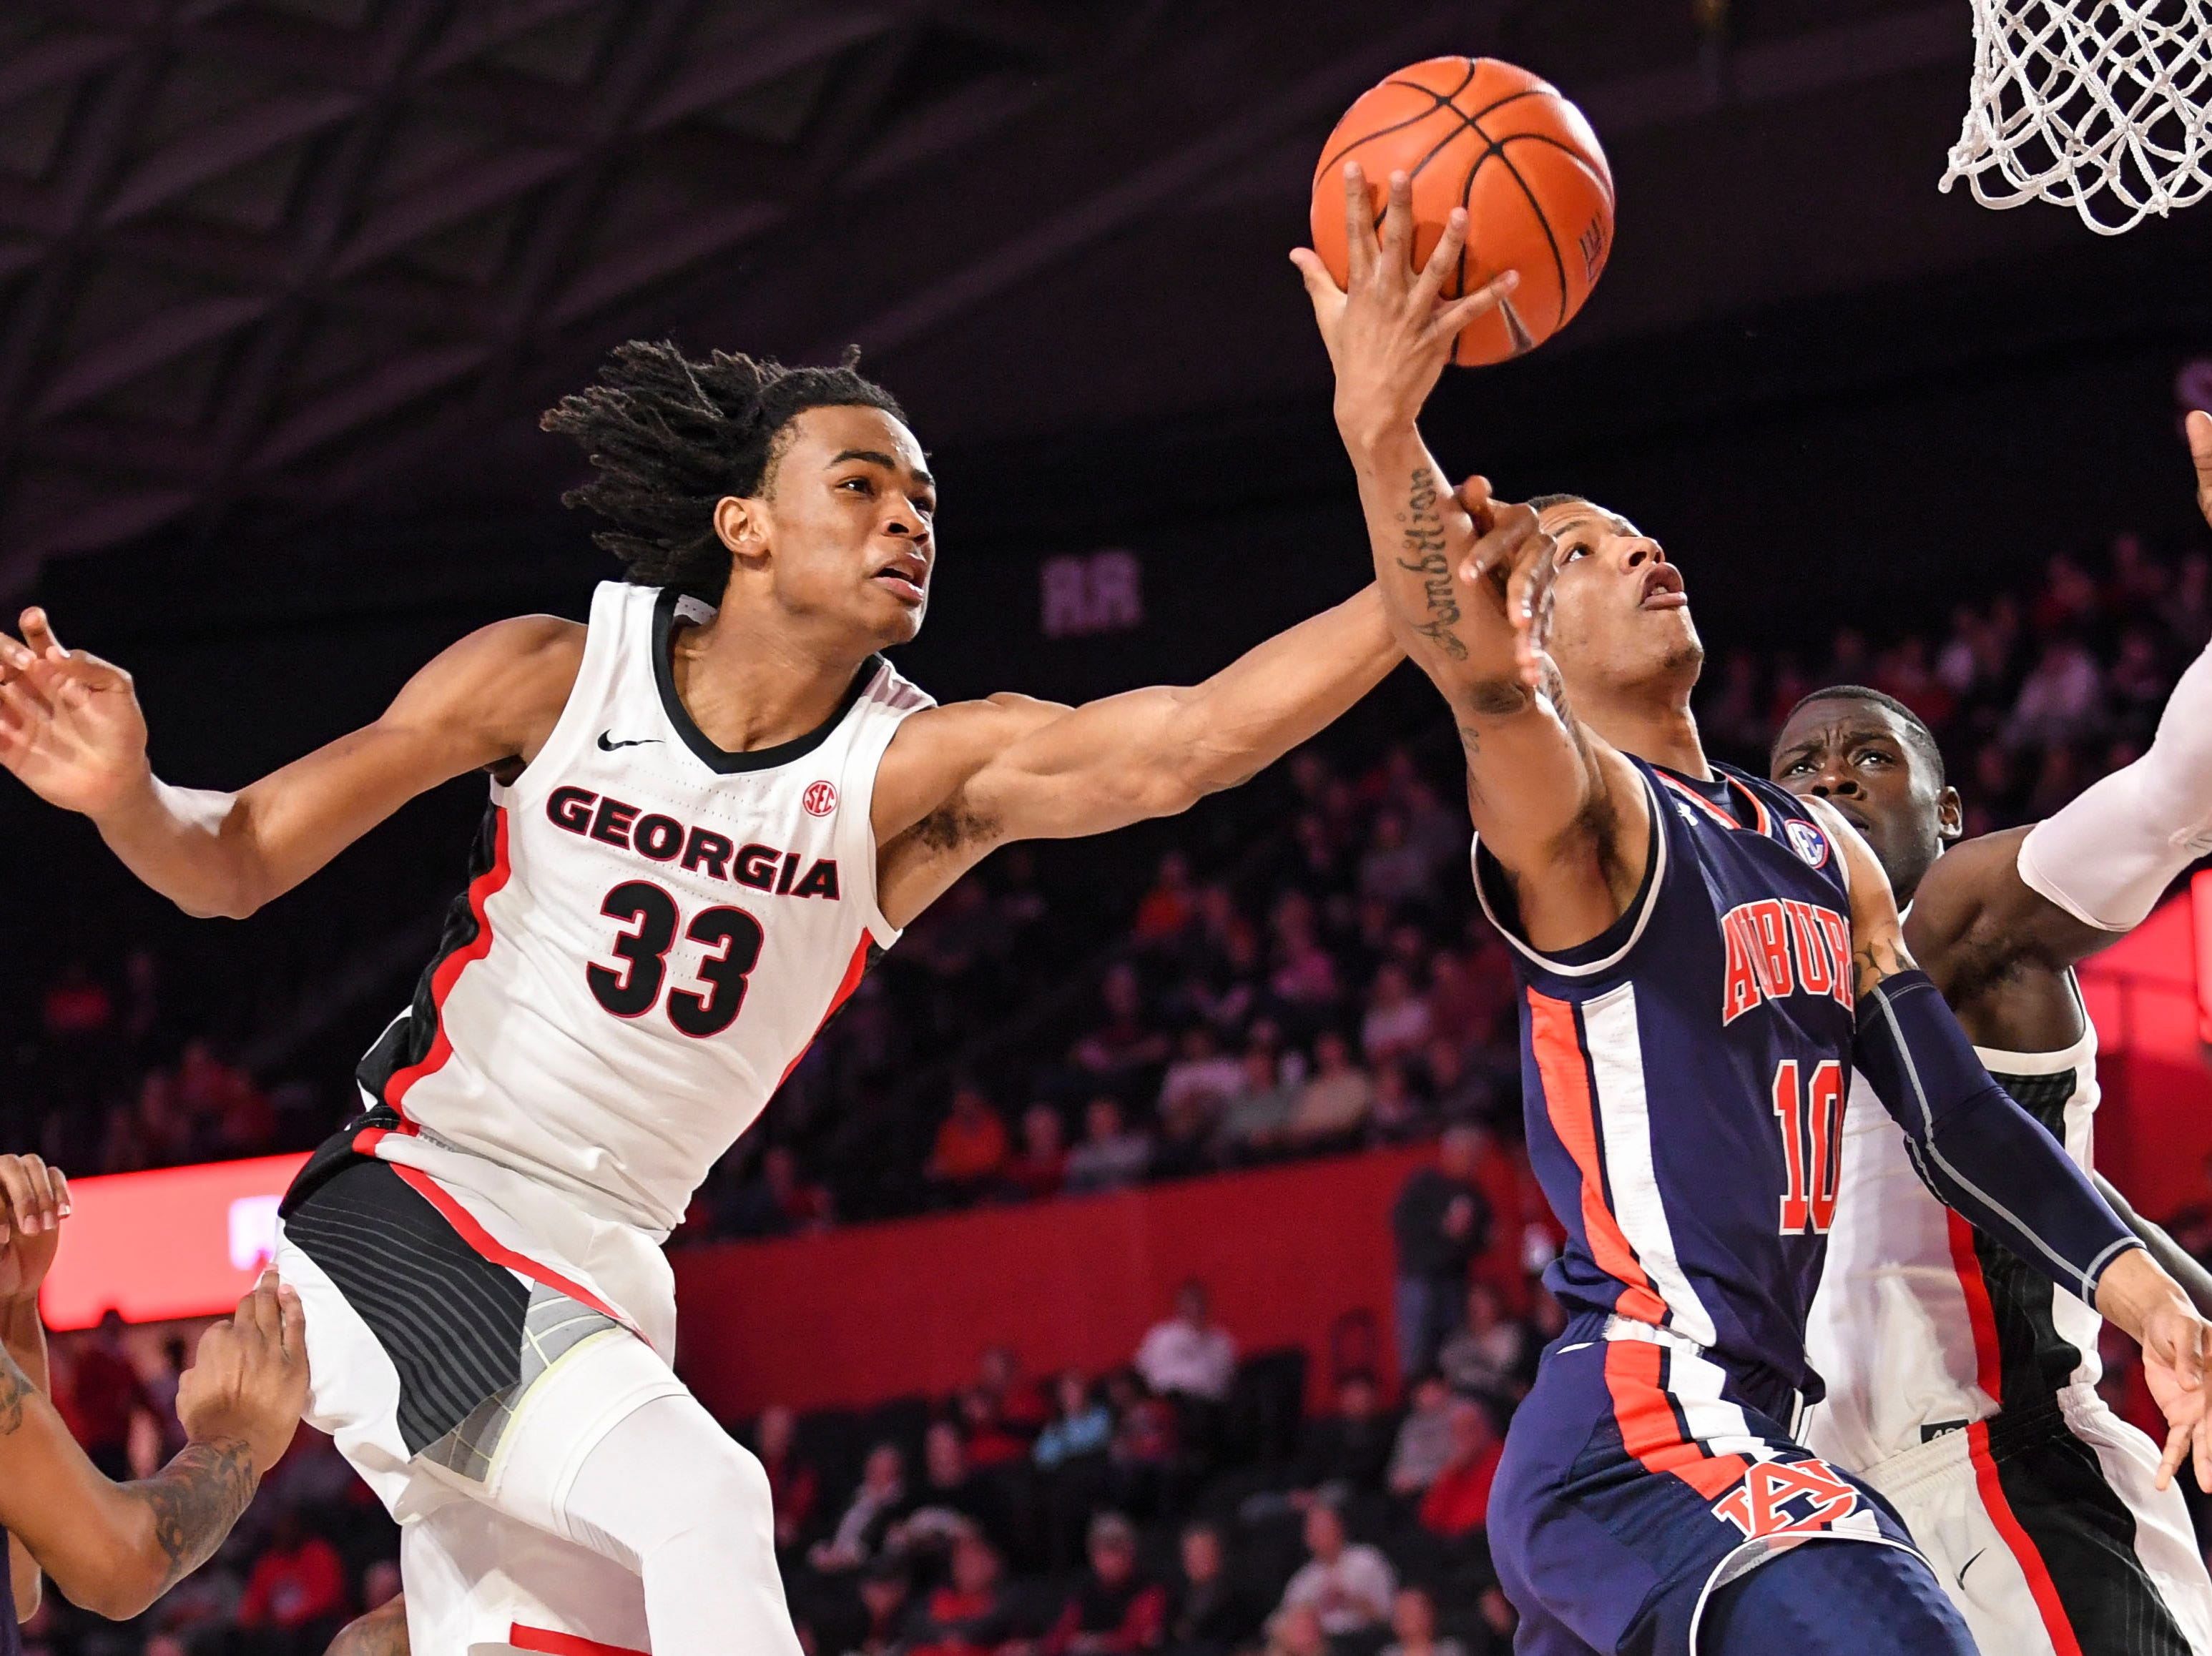 Feb. 27: Auburn Tigers guard Samir Doughty (10) and Georgia Bulldogs forward Nicolas Claxton (33) battle under the basket during the second half at Stegeman Coliseum.